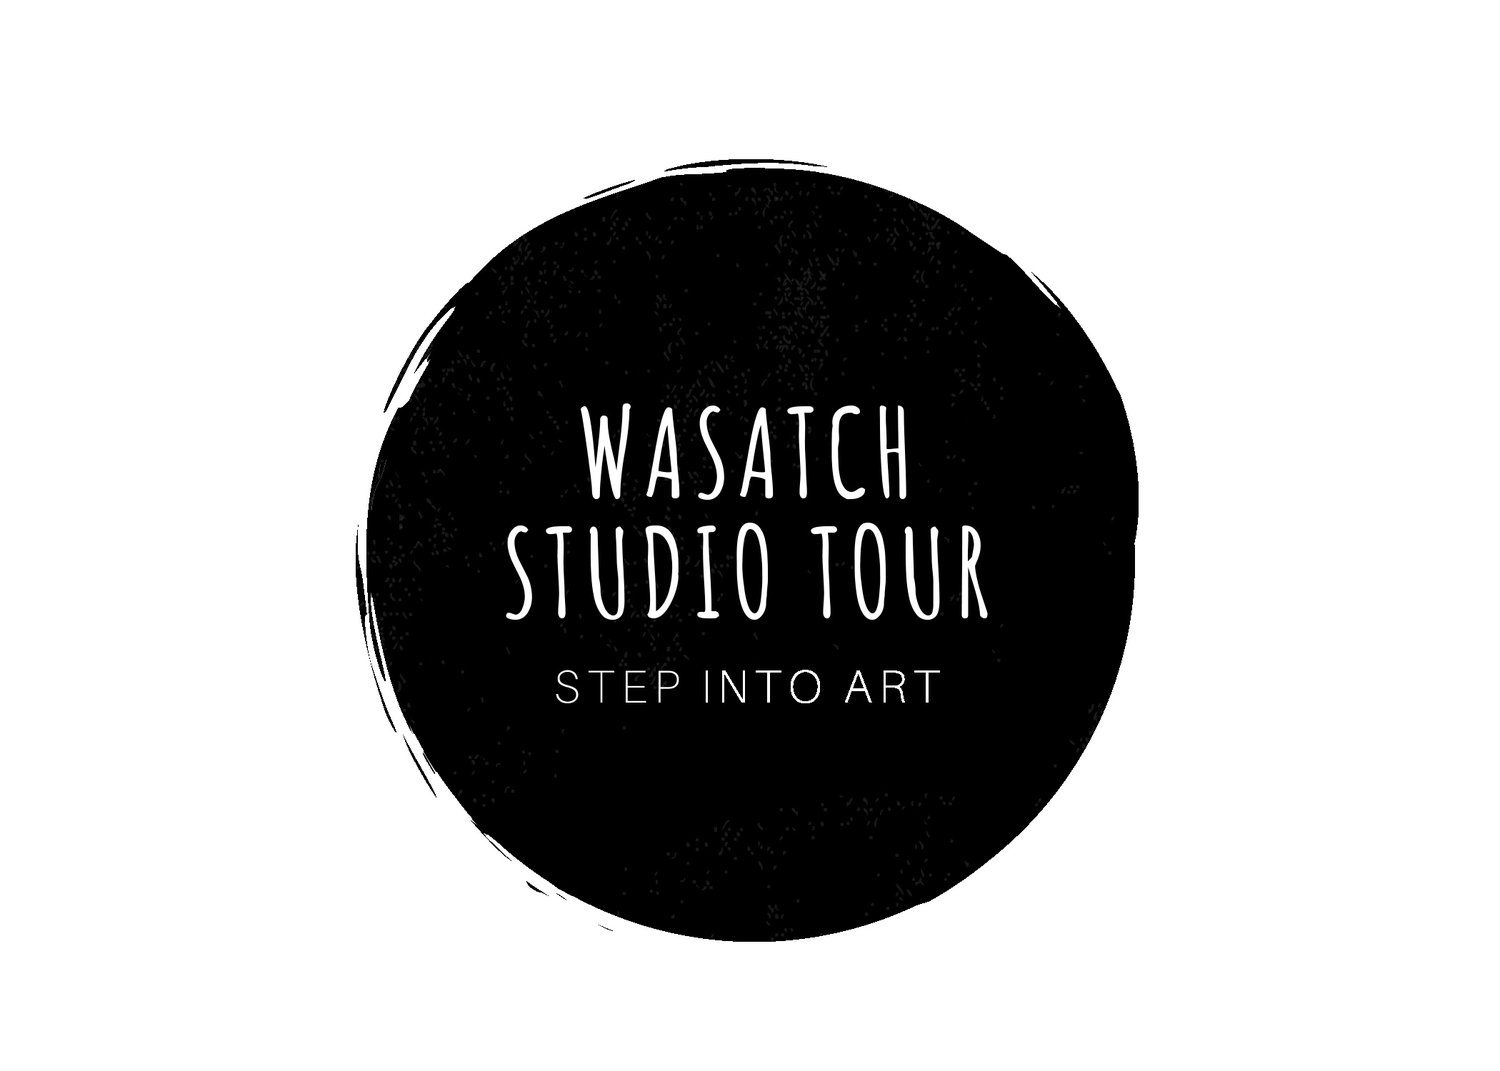 Wasatch Studio Tour